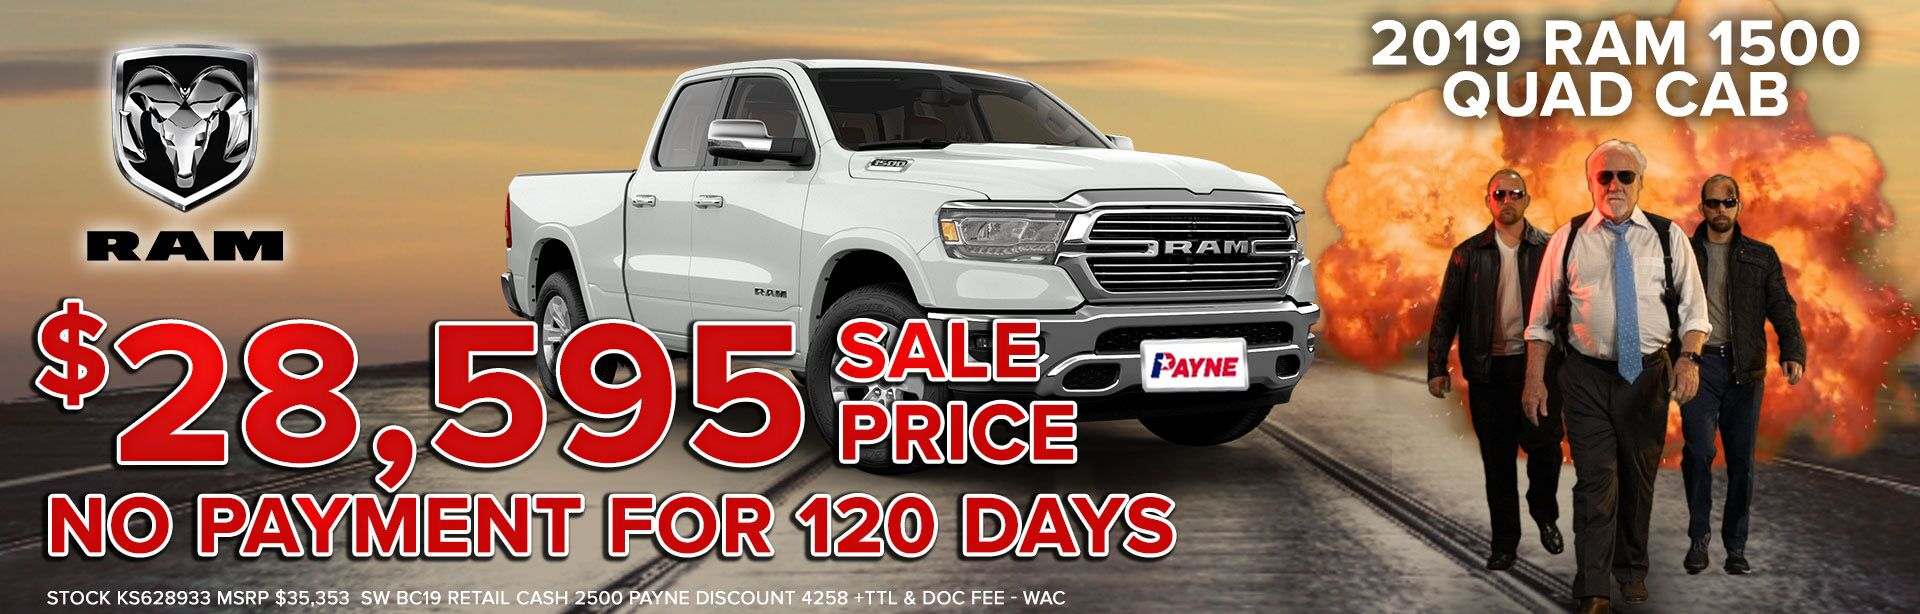 2019 RAM 1500 Quad Cab Sale Price